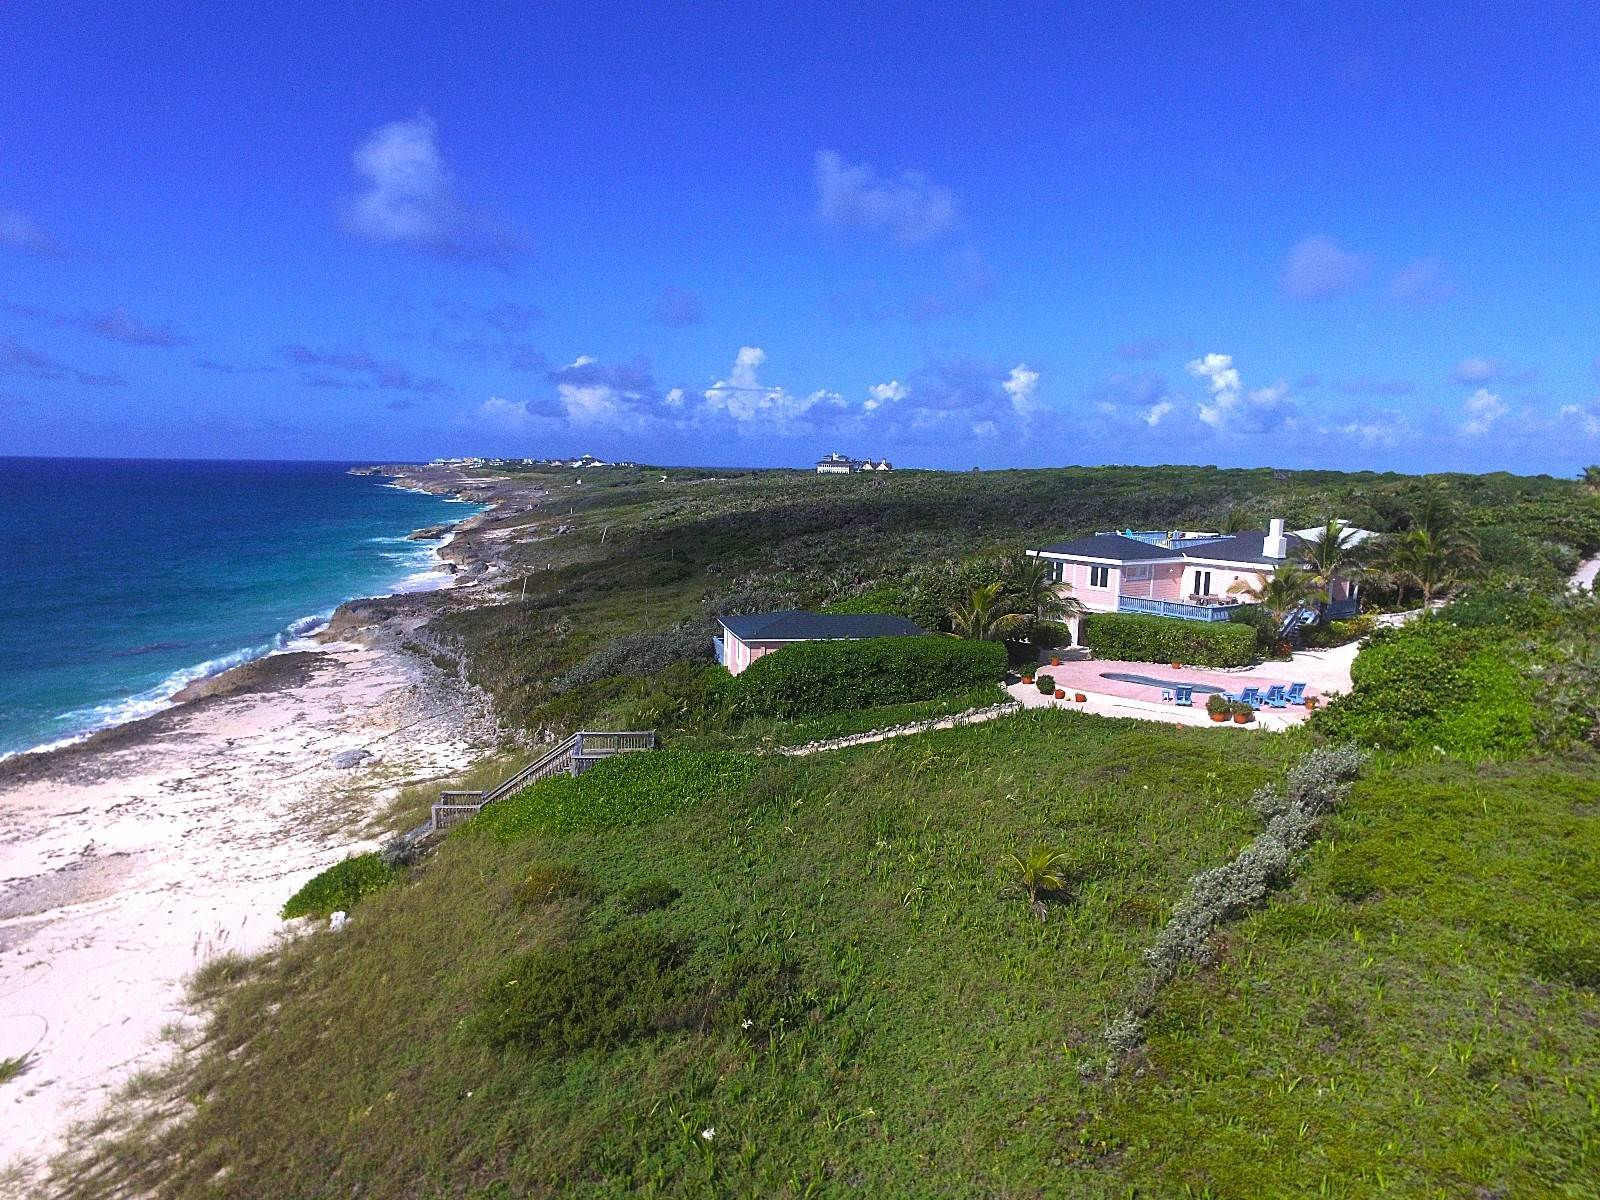 Single Family Homes for Sale at Walking Stick, a 2.2.Acre Atlantic Estate at The Abaco Club on Winding Bay MLS-27717 Winding Bay, Abaco, Bahamas